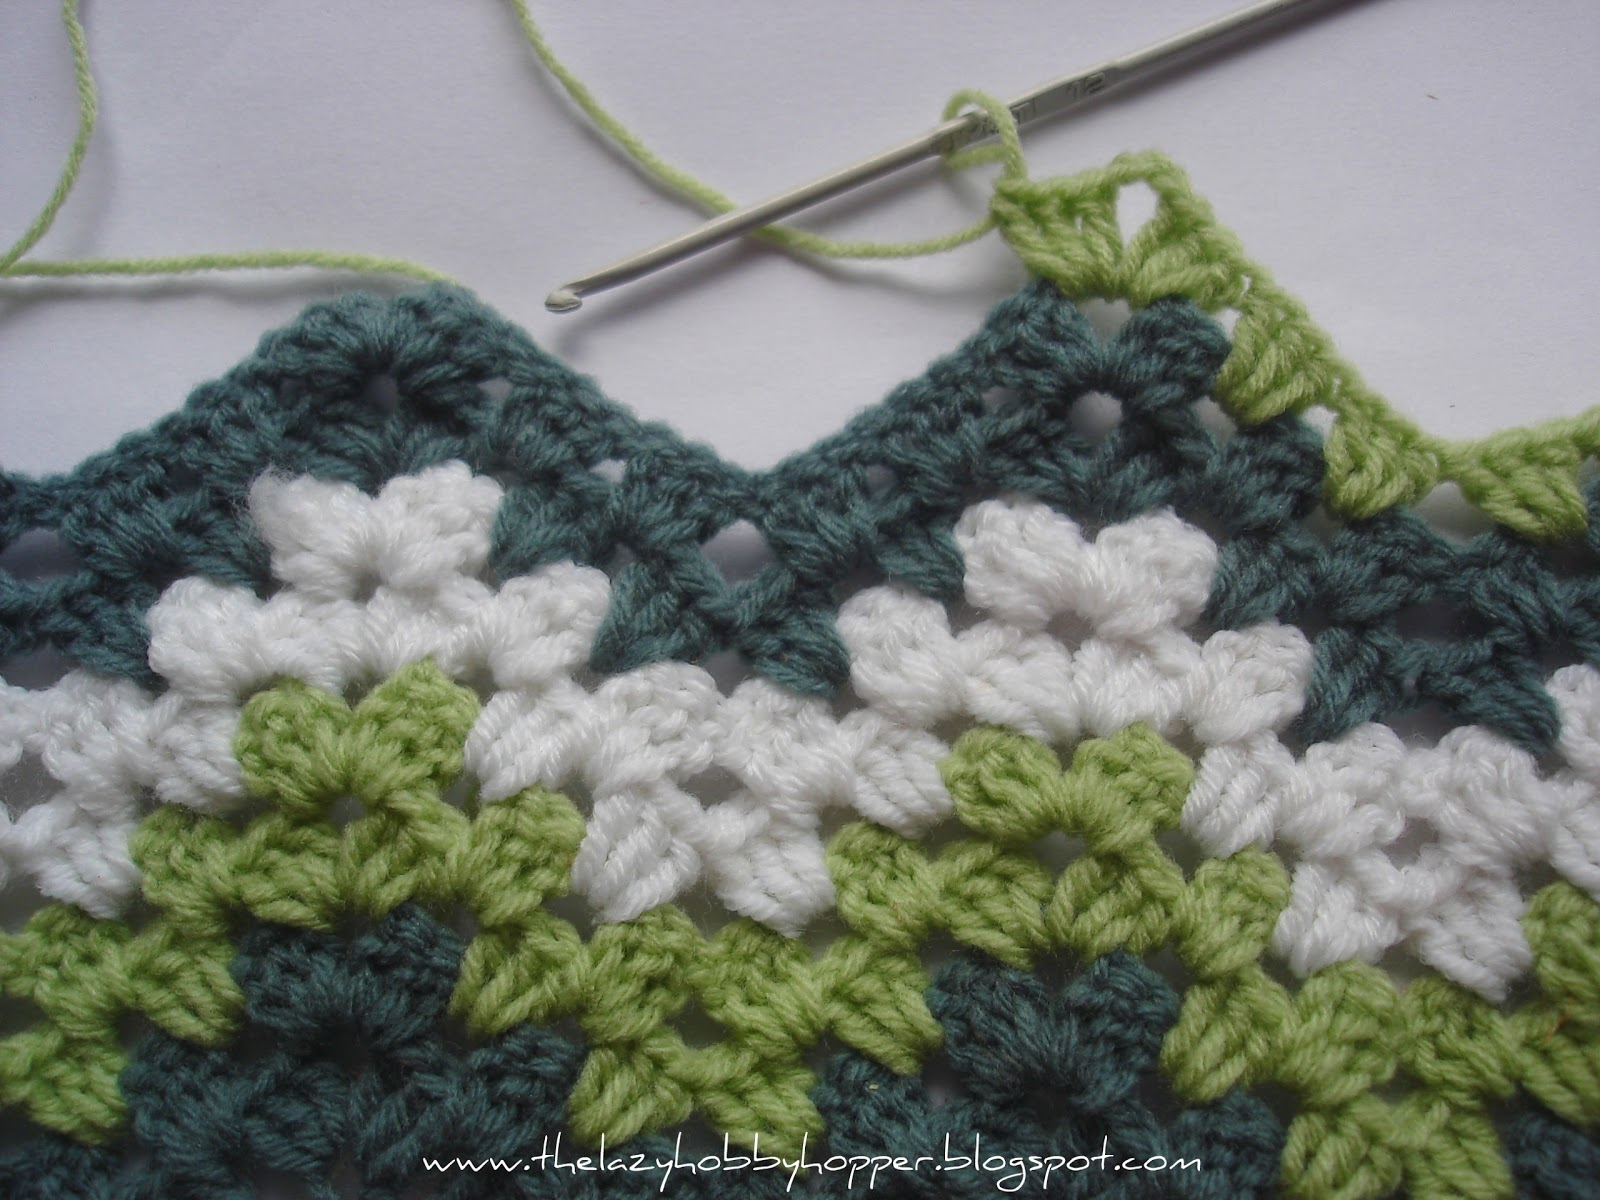 Crochet Patterns Ripple : ... many of you who can crochet fairly well may not know how to crochet a